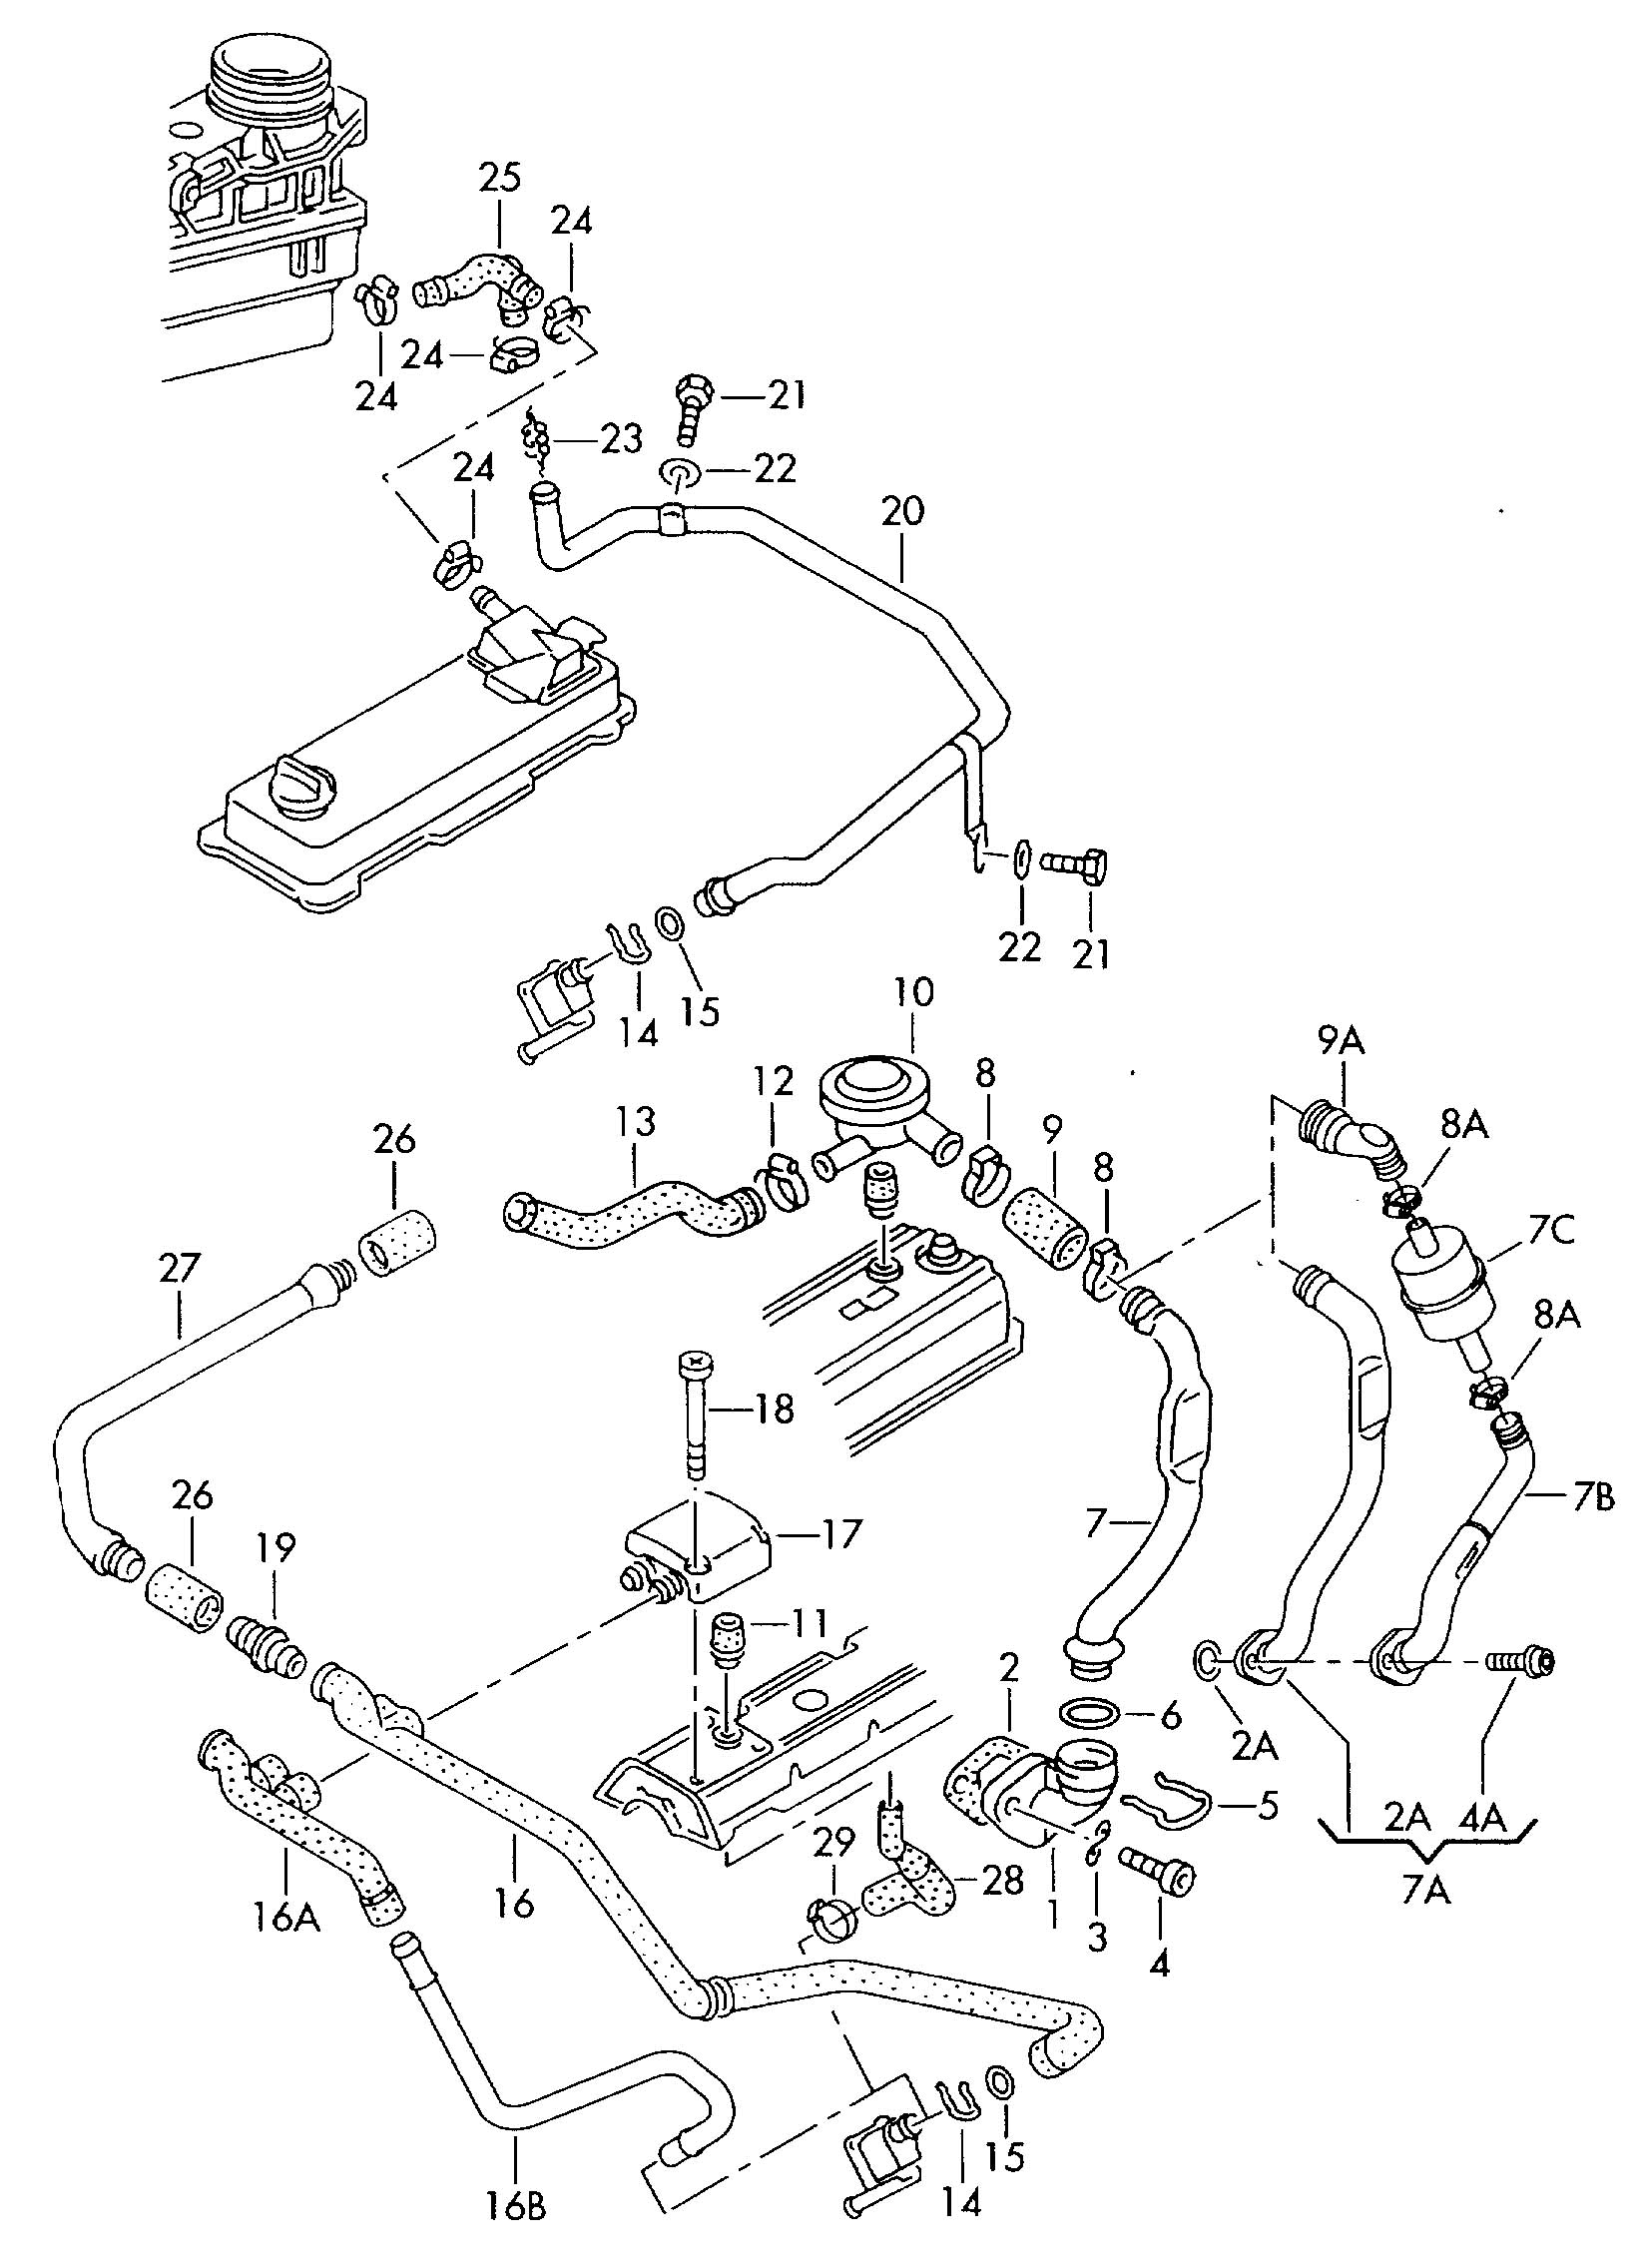 Drawings exploded views likewise Jetta Golf 995 05 Mk4 additionally 07D121008A likewise T25197234 Only fires 1 cylinder chevy 5 0 1500 likewise ShowAssembly. on 97 jetta cylinder head